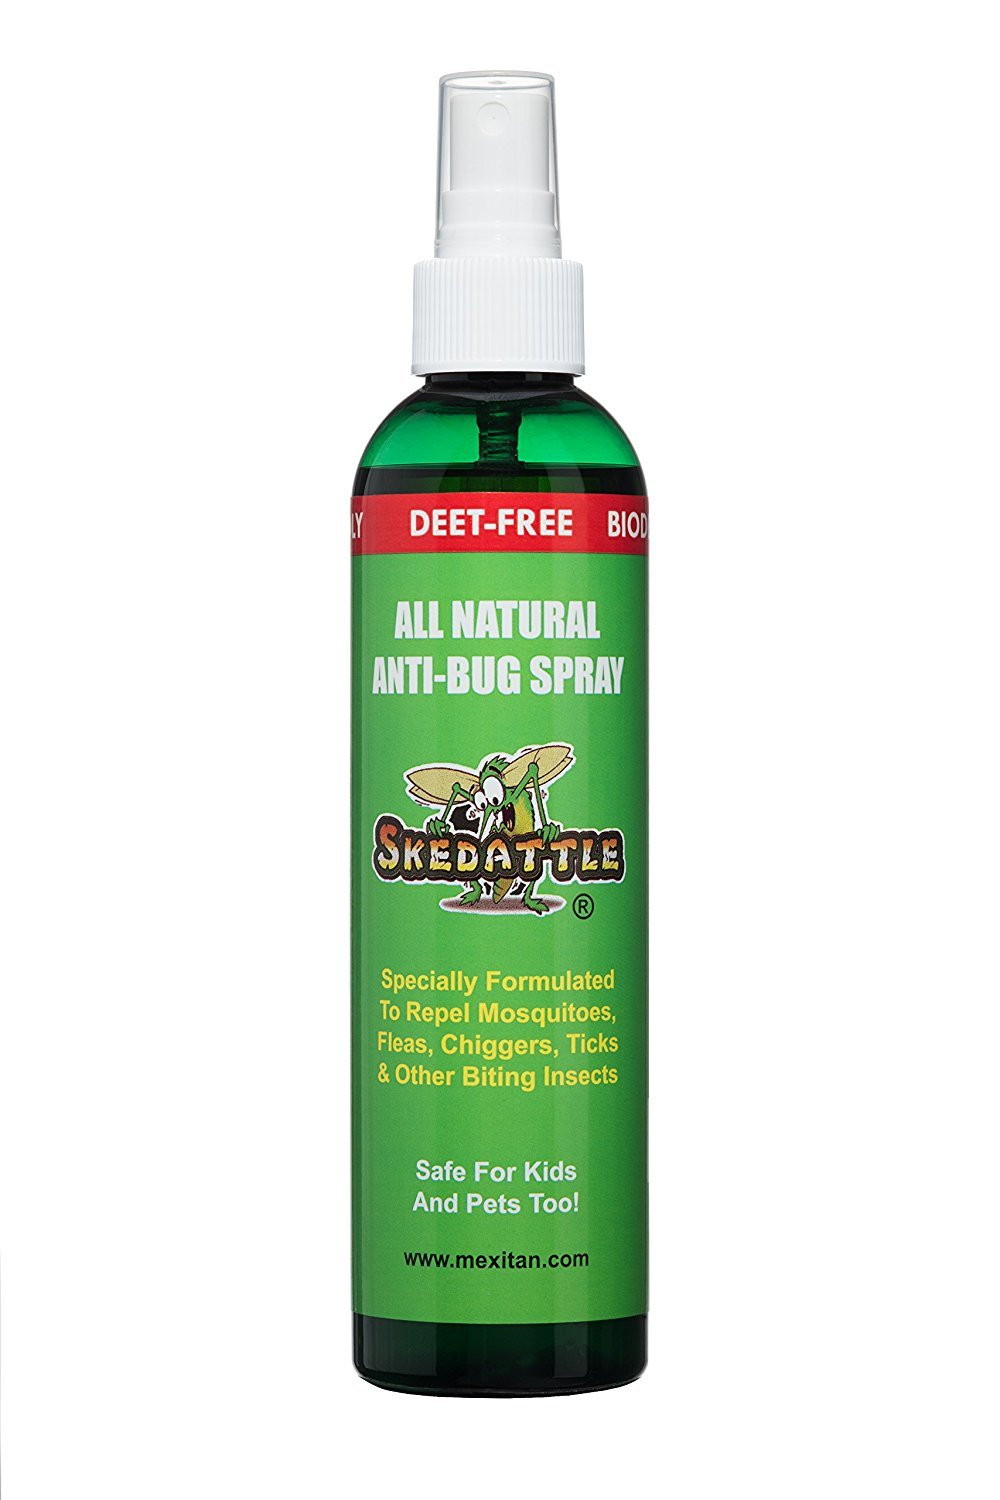 One of the greatest features of this particular spray is the fact that not only the spray is natural and safe for you, but the packaging of it is ...